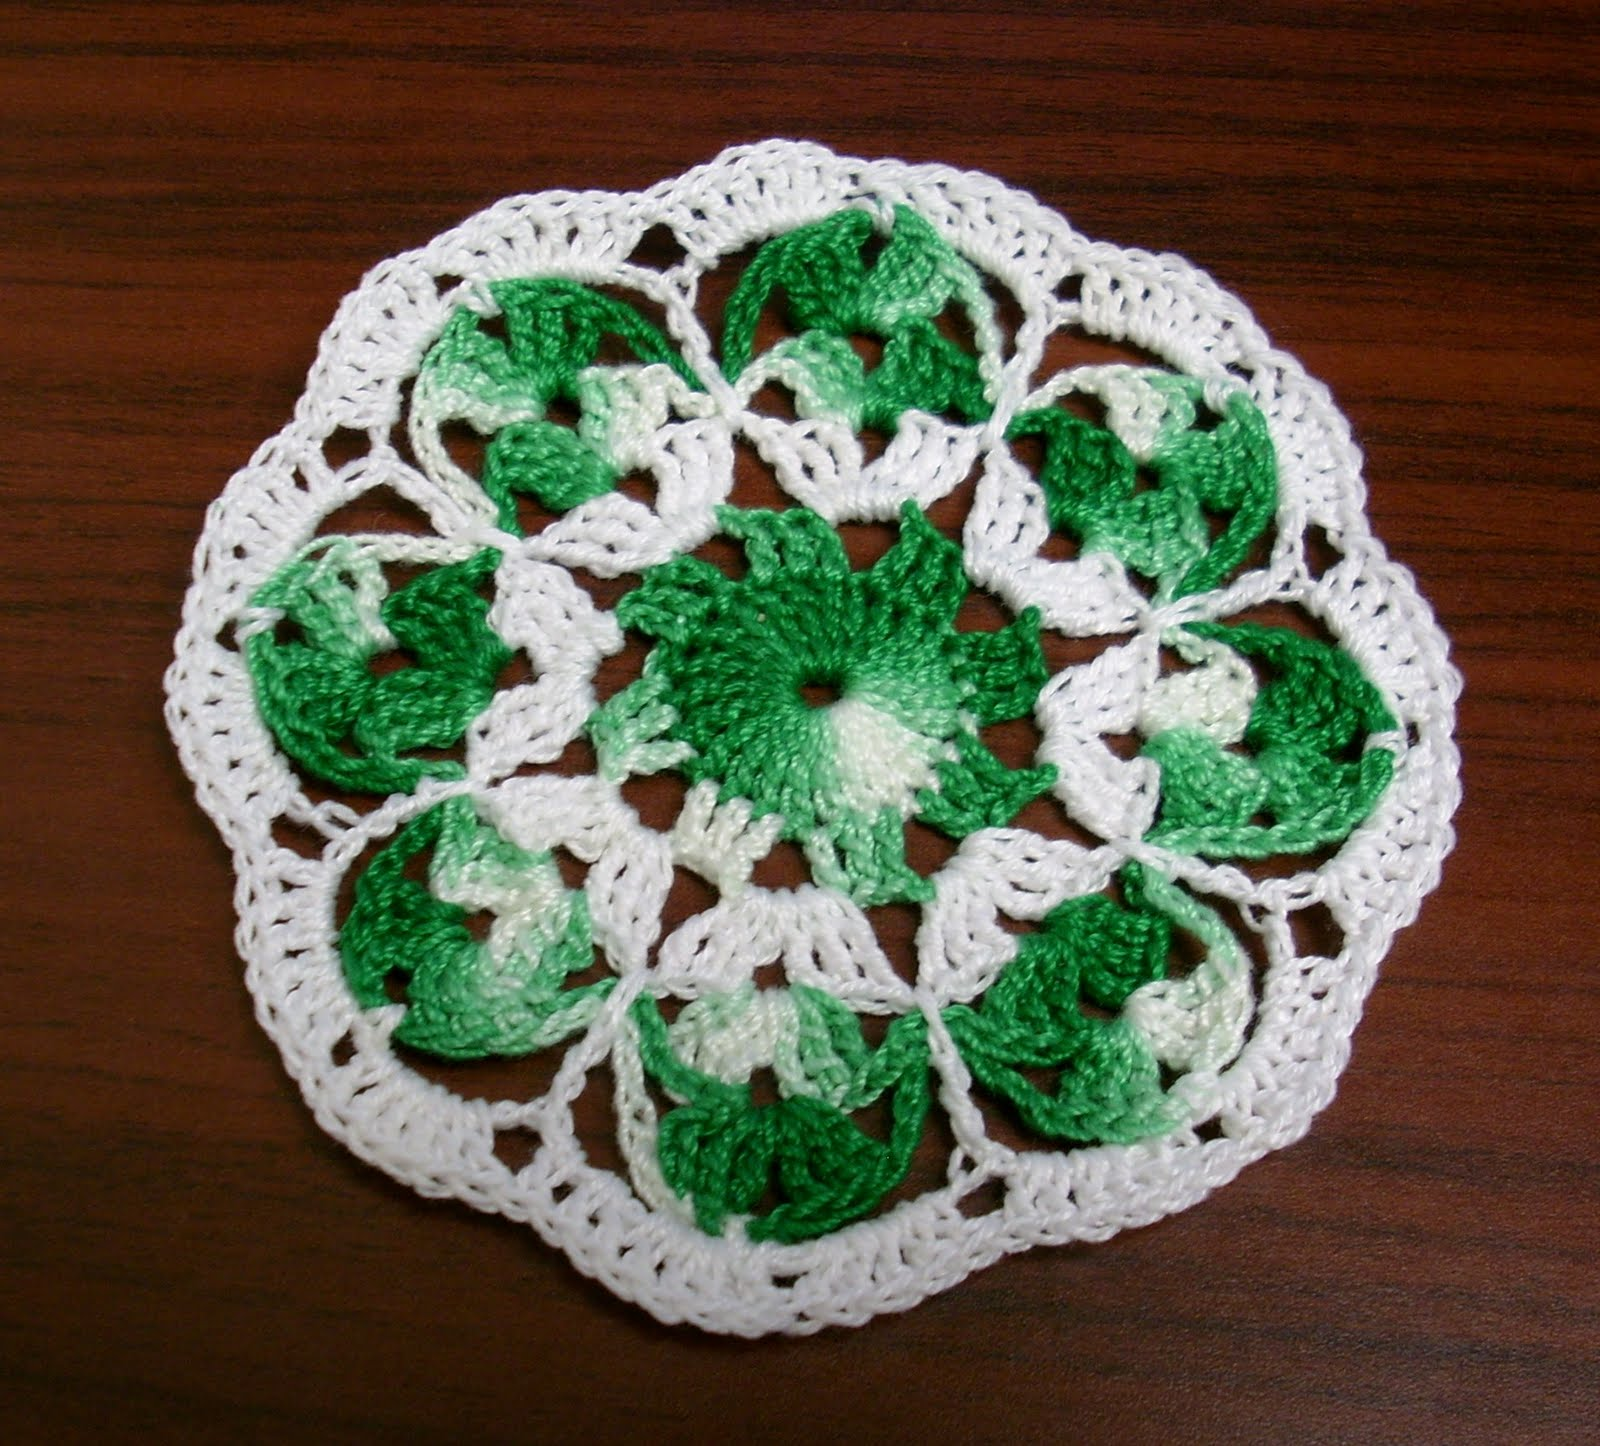 Crochet Coasters : Sole Dominion: Crochet Coasters